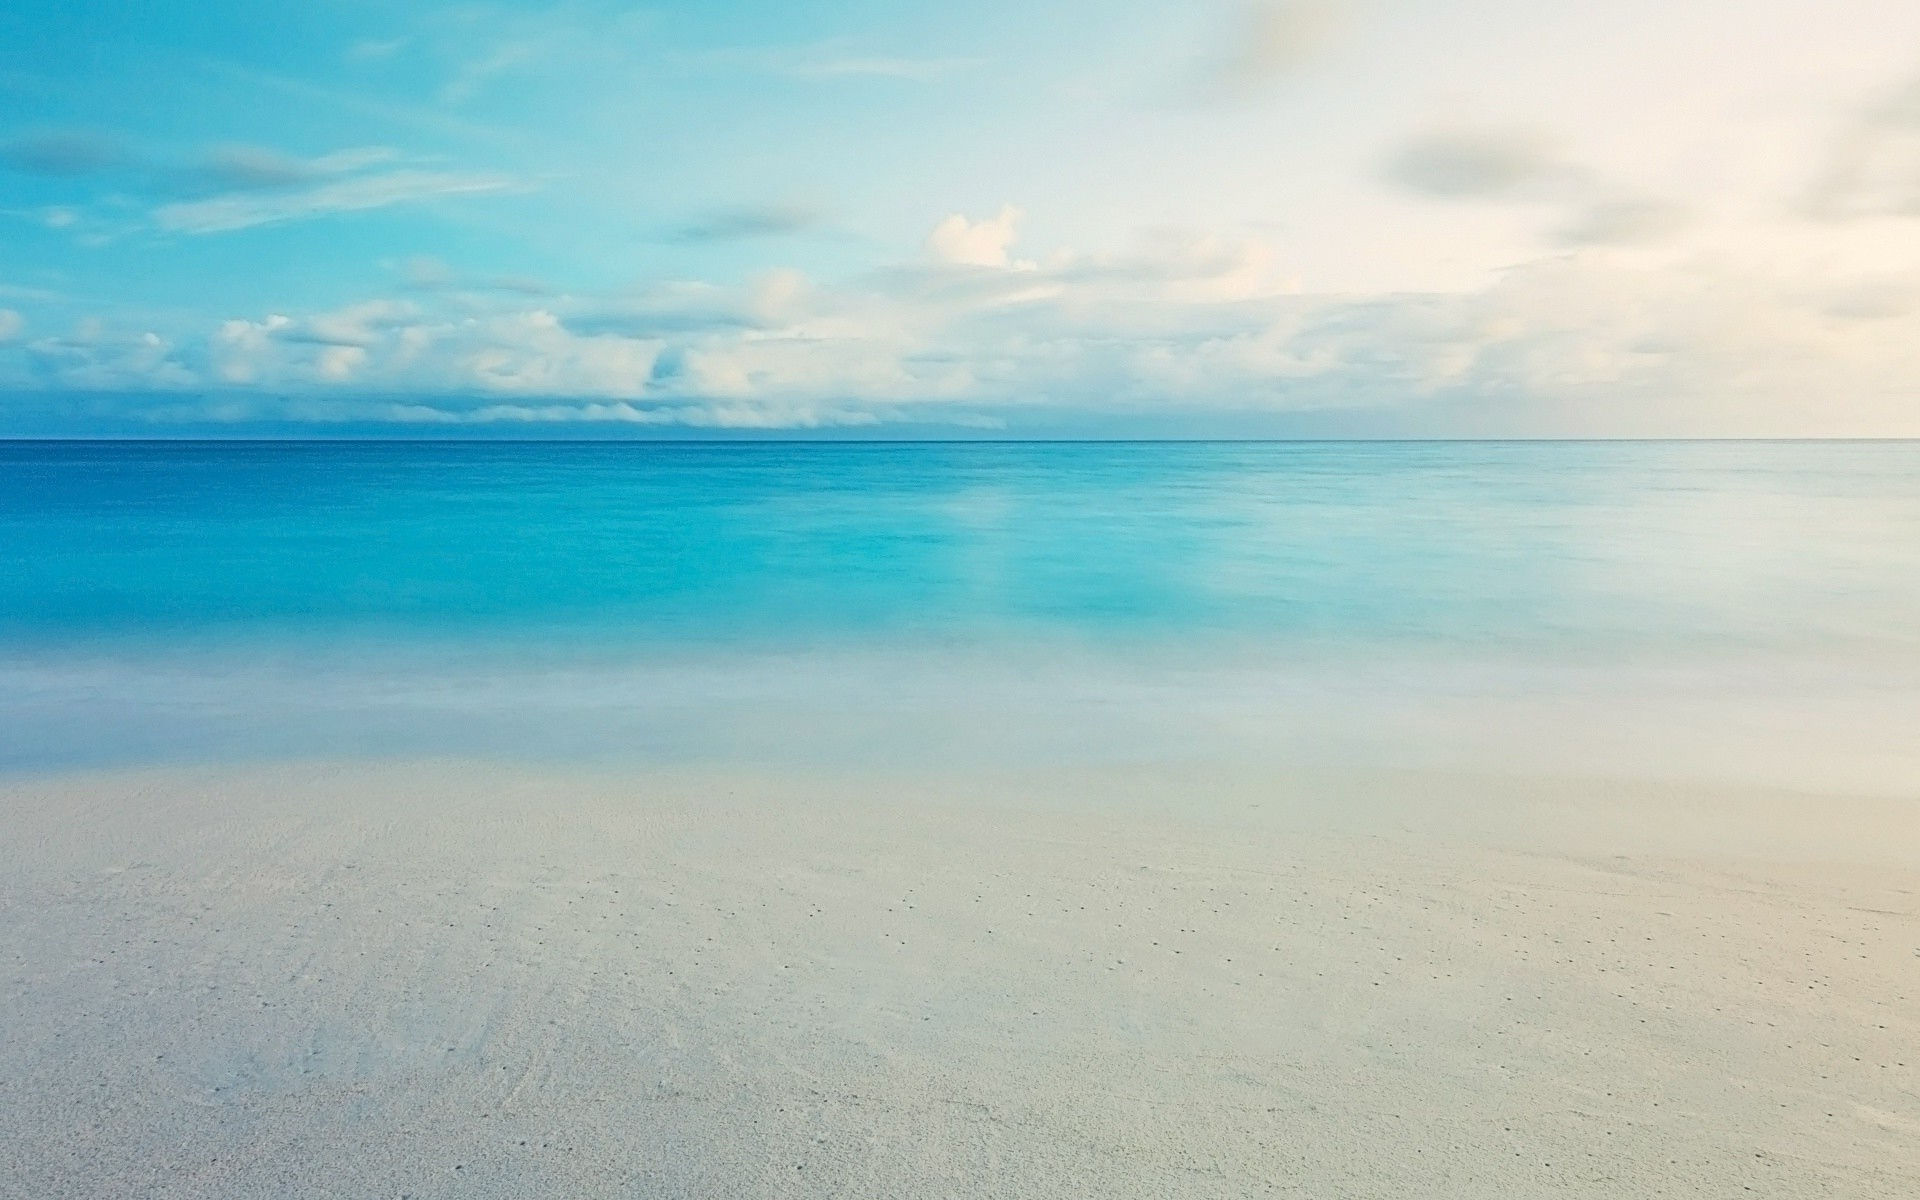 Calm blue ocean wallpaper 14485 1920x1200